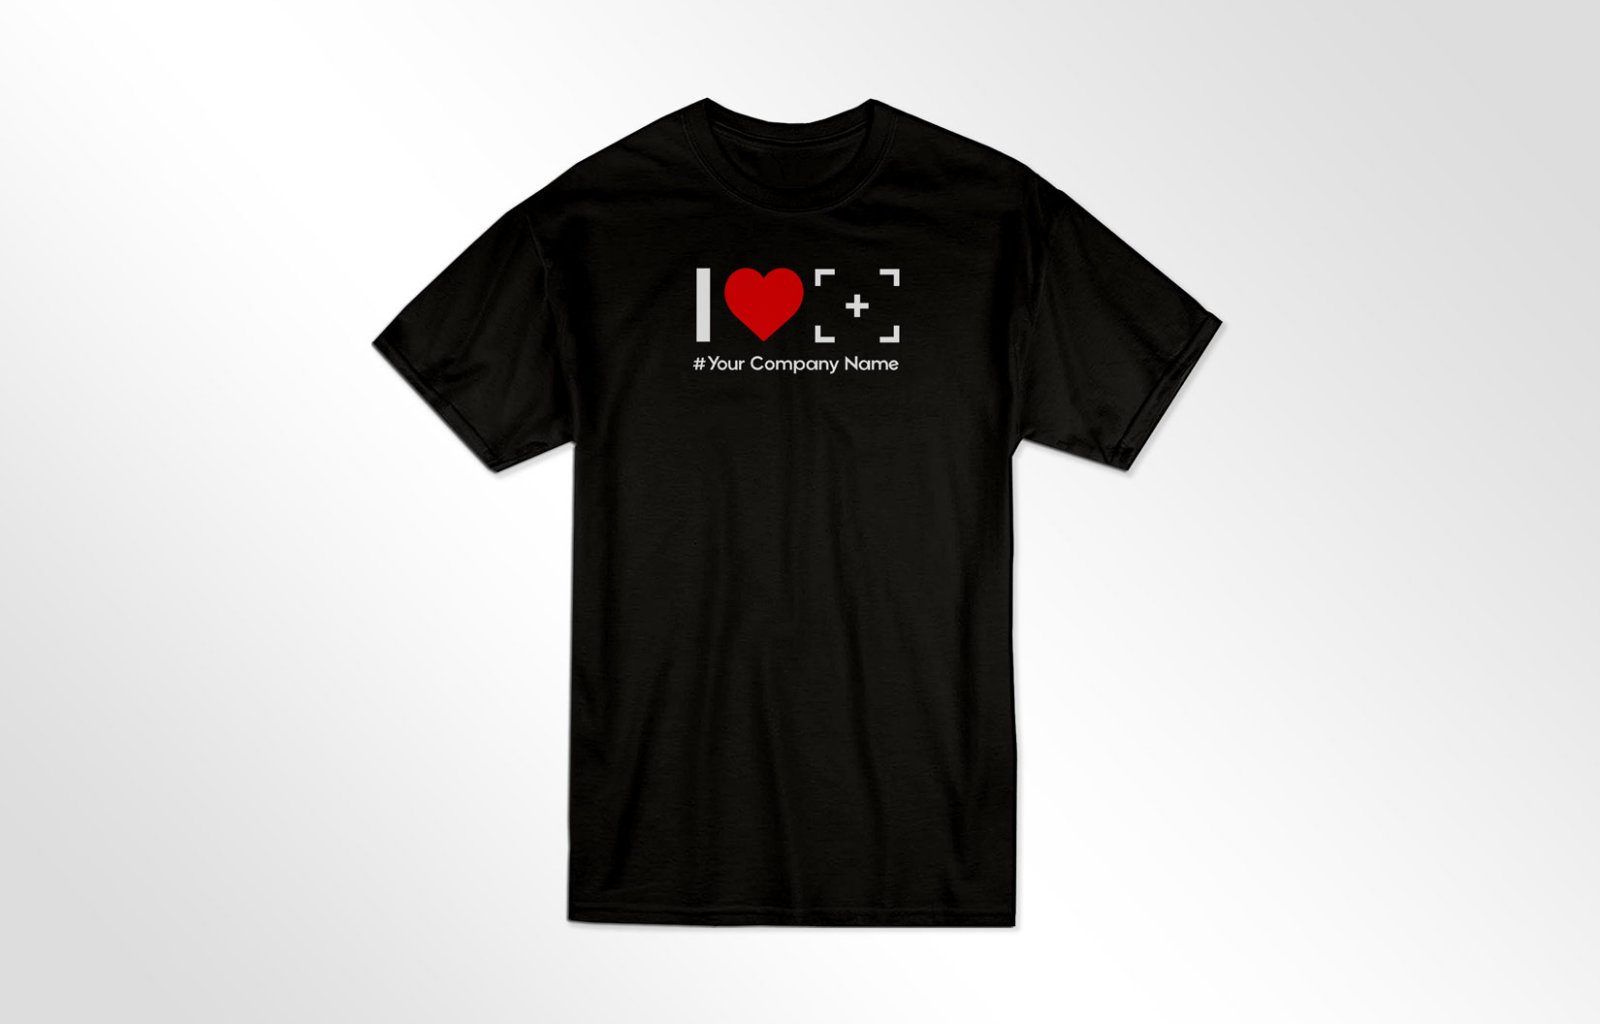 Personalized Crew-neck t-shirts